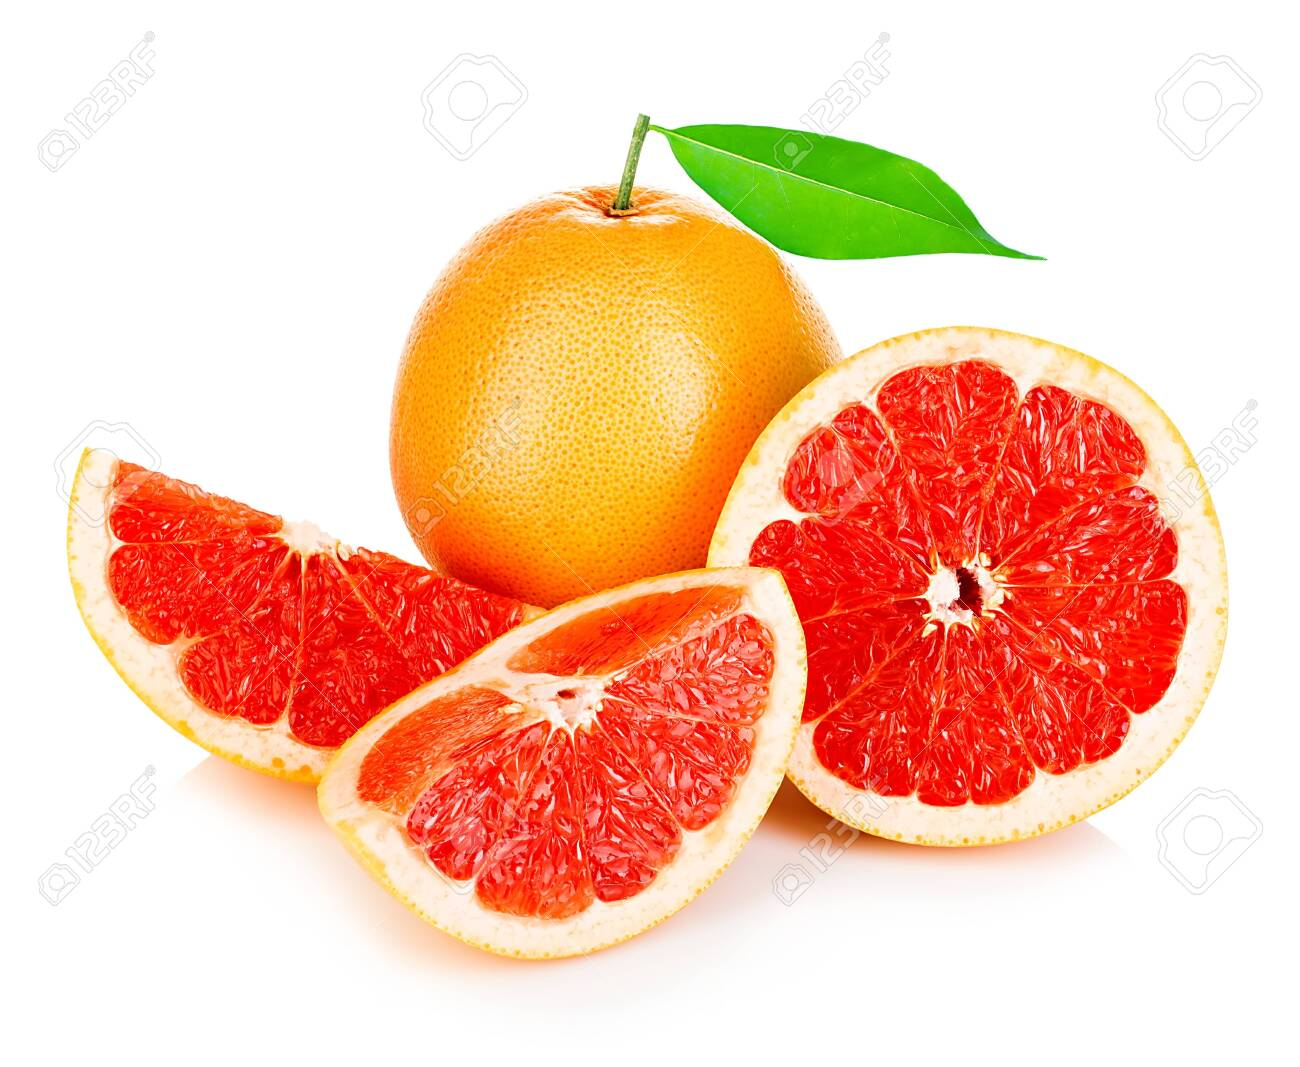 Grapefruits with leaf isolated on white background. - 126197365